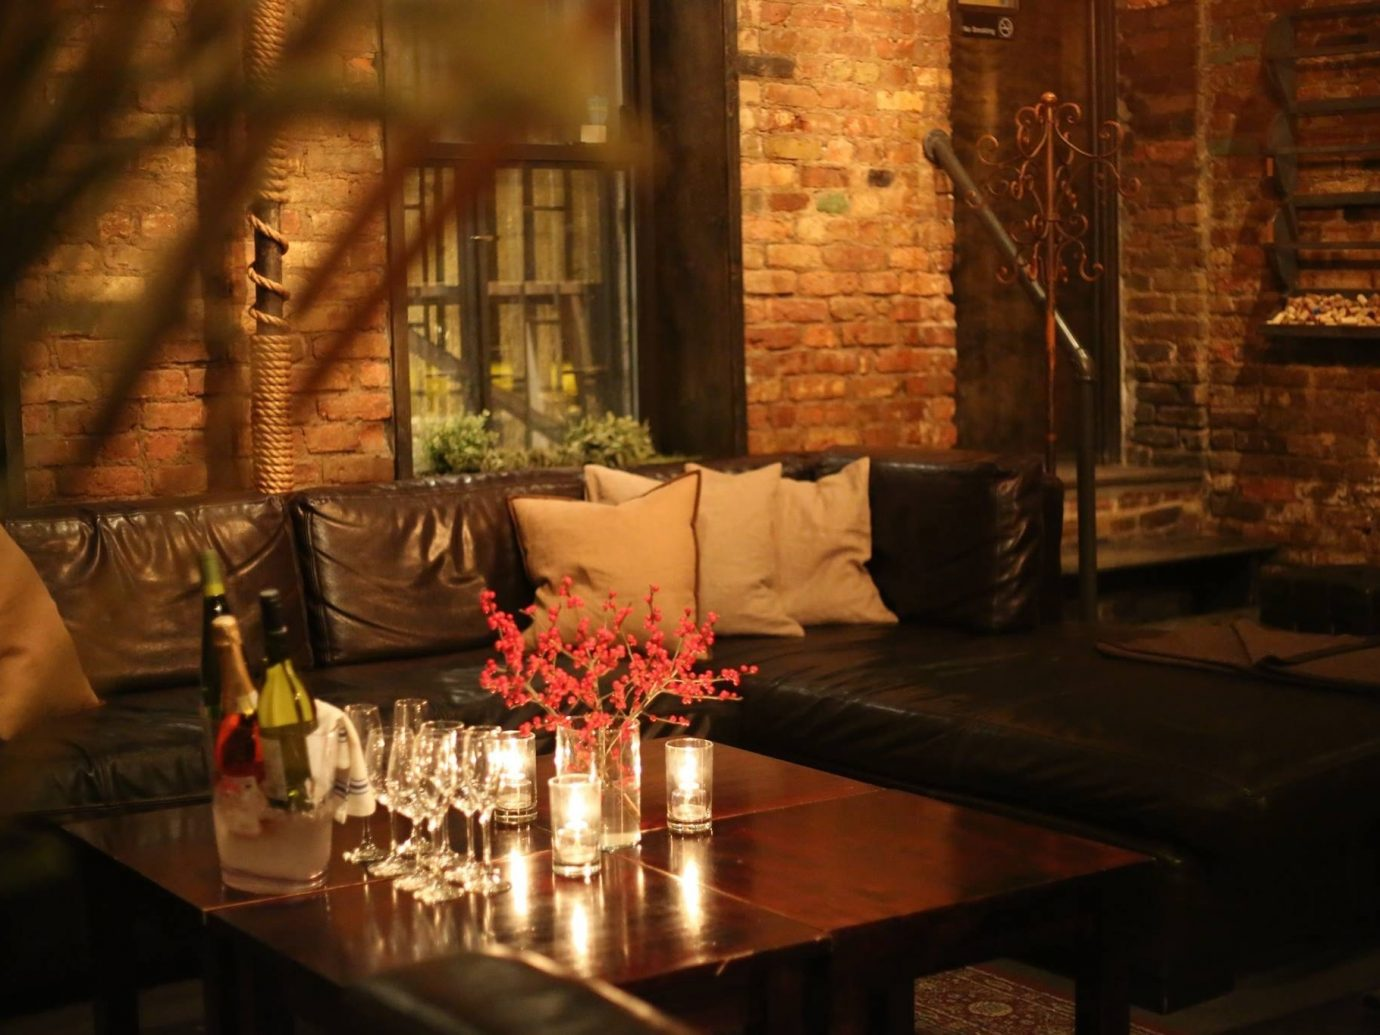 Food + Drink Romance table indoor restaurant room Living interior design Bar meal dining table